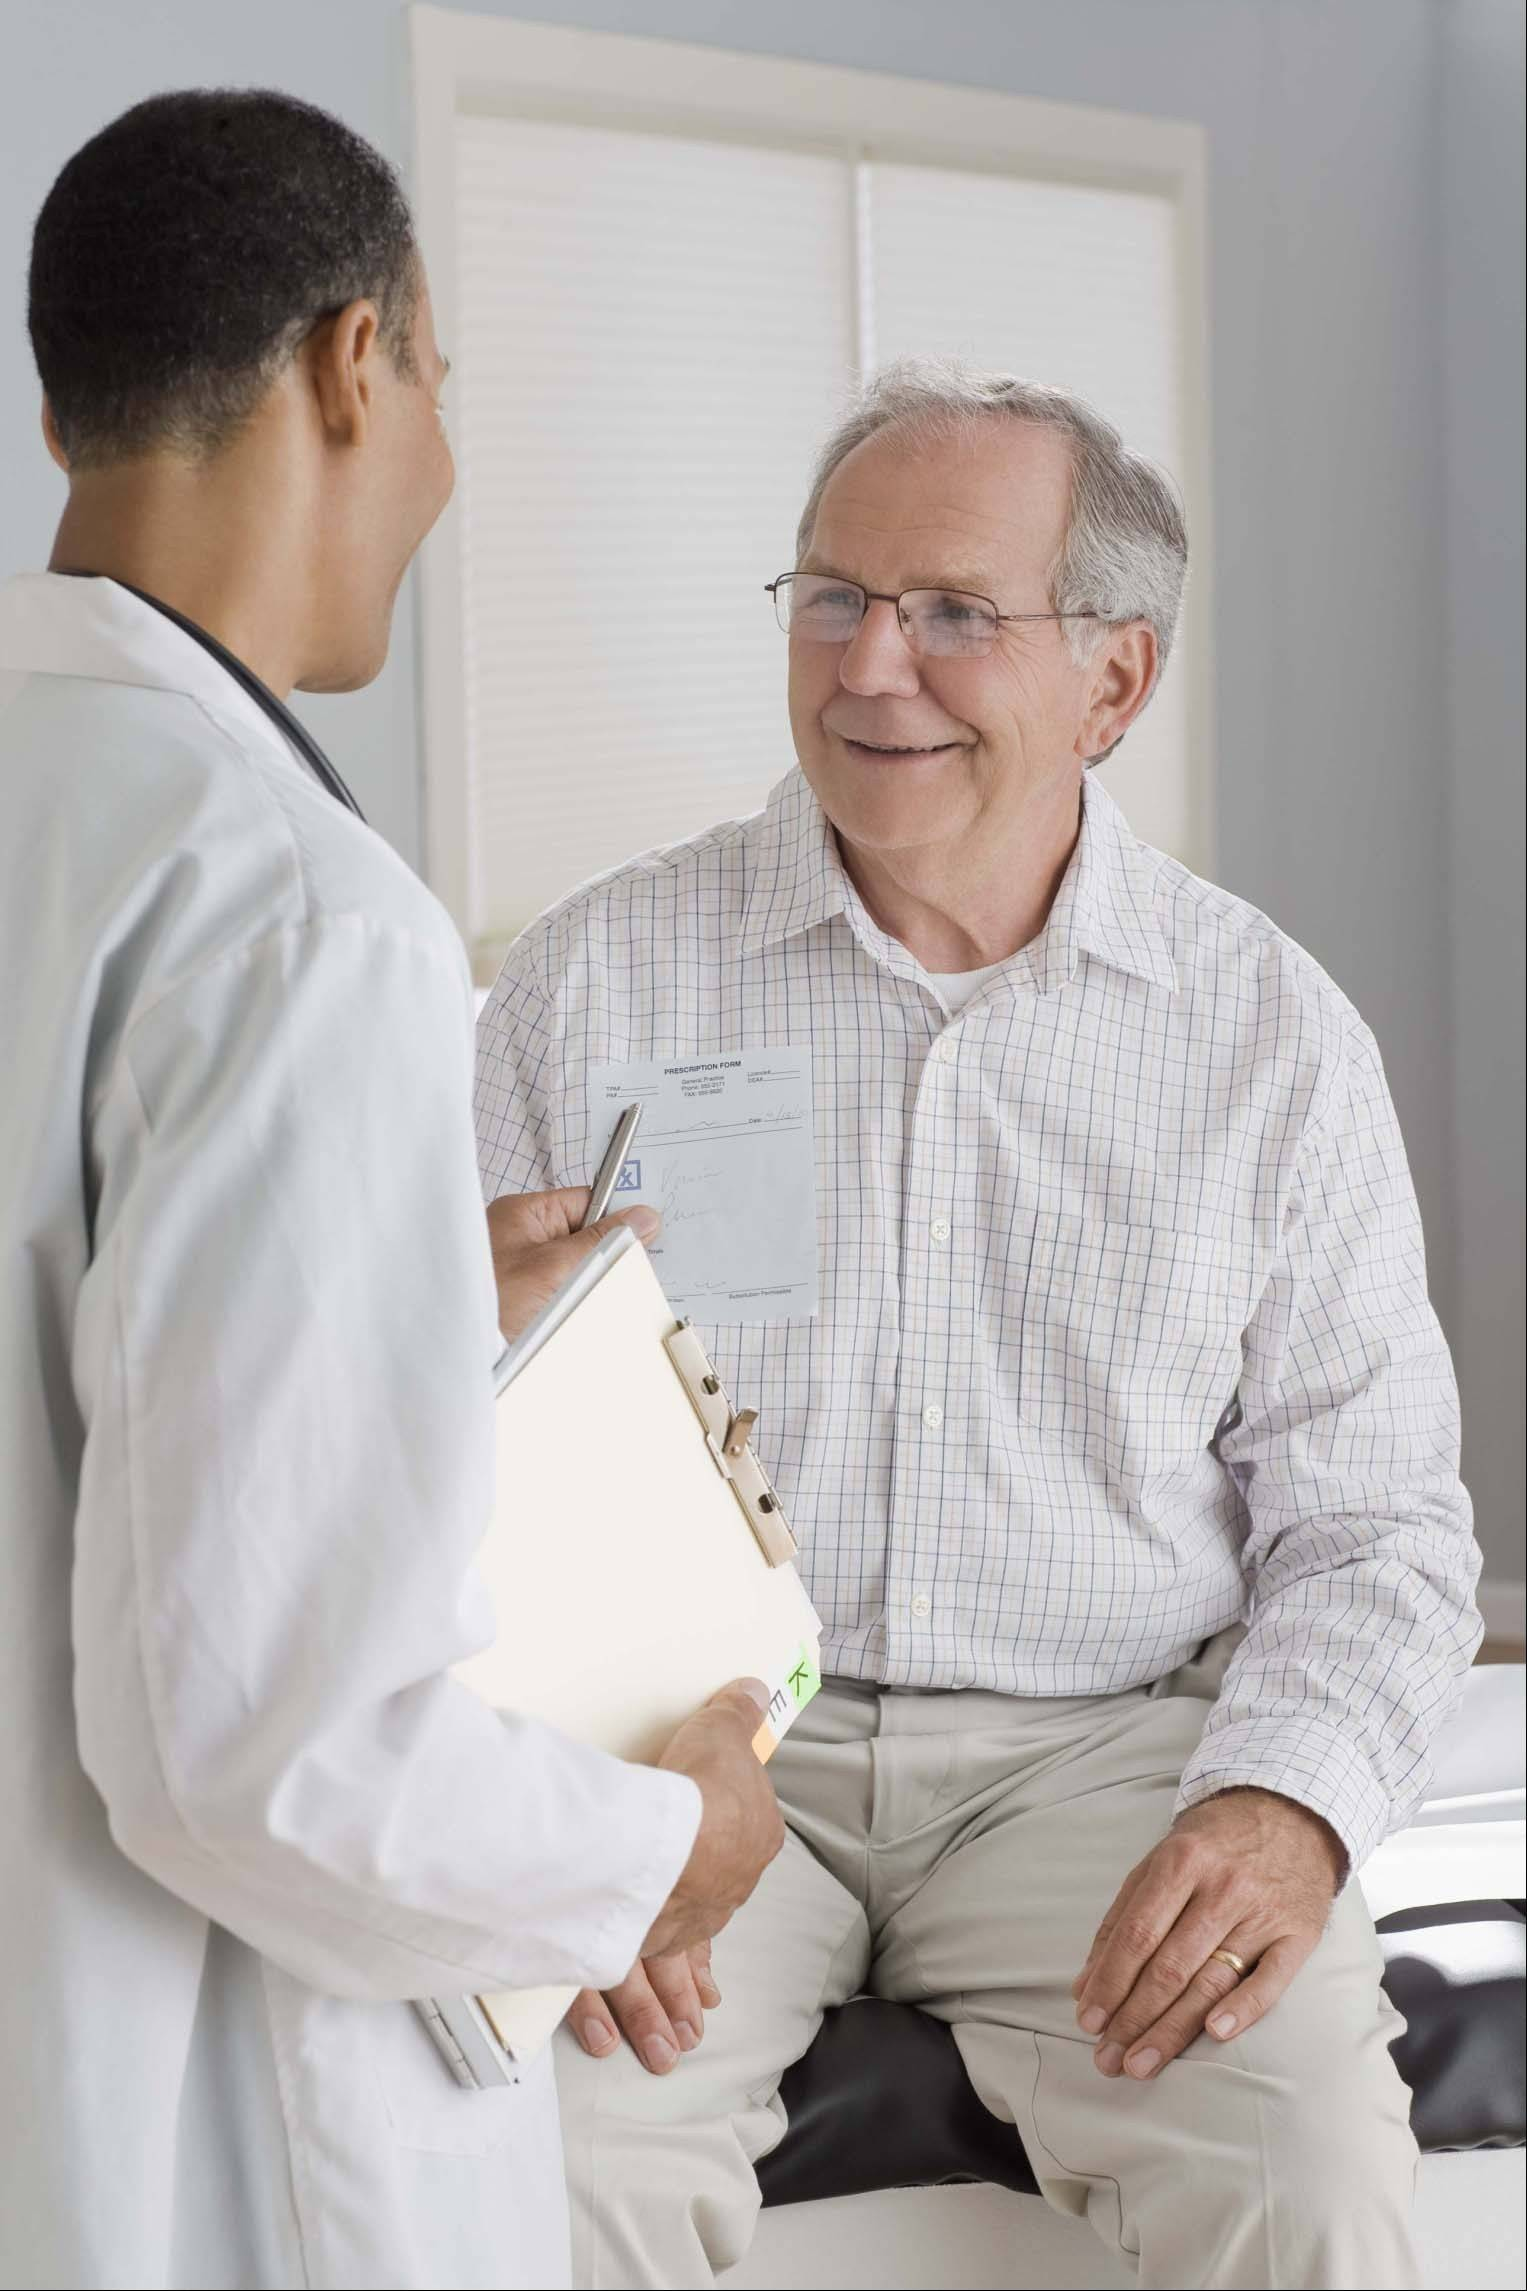 Experts recommend patients keep their doctors updated on their health history and condition.